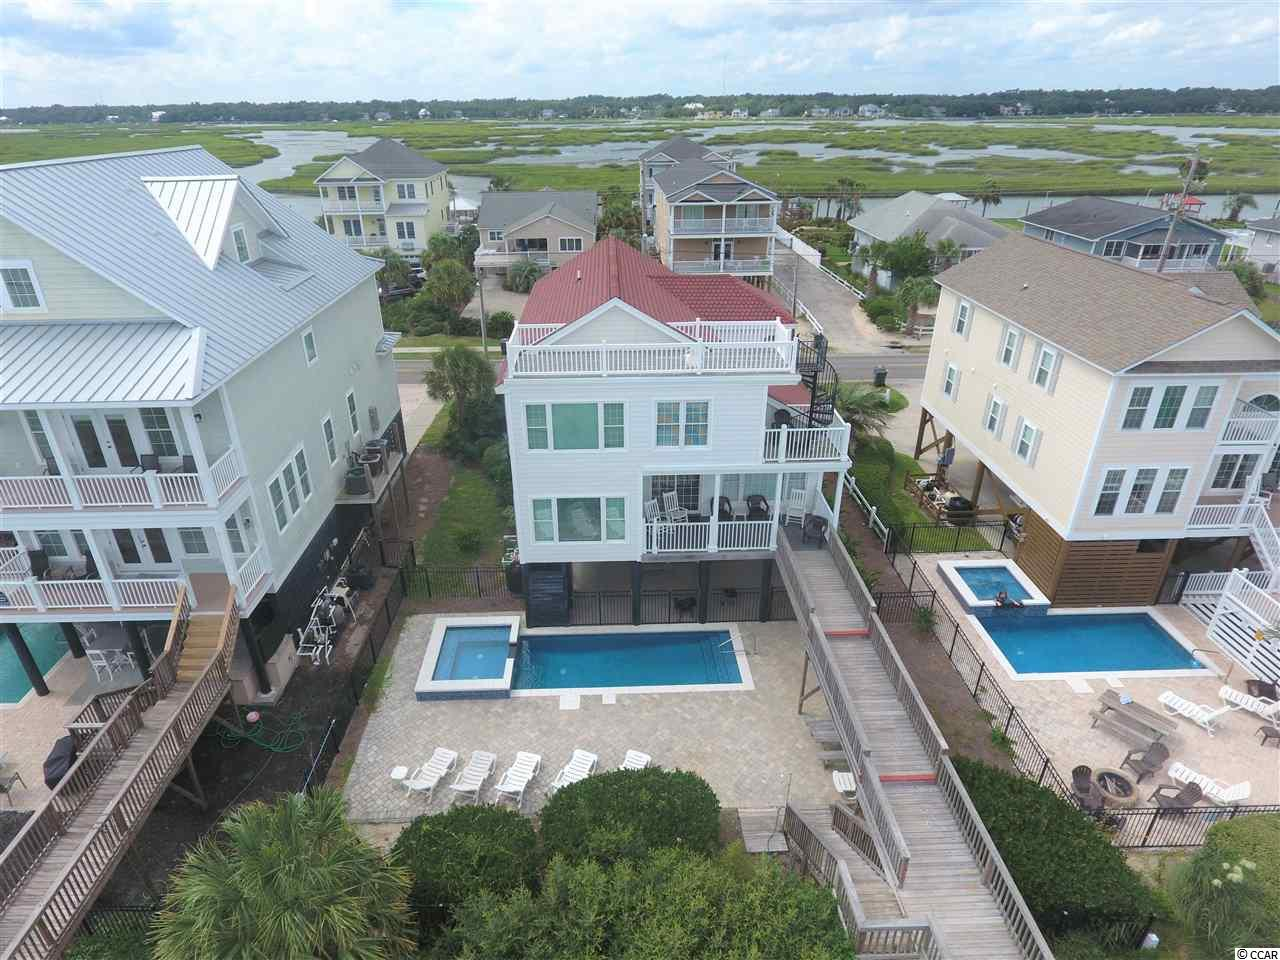 "Get ""Unplugged,"" relax and enjoy the beach!  1049 South Waccamaw Drive is located just over 1 mile South of the Garden City Pier.  This beach home features 5-bedrooms, 5 full bathrooms, which includes two oceanfront master bedrooms, a large private heated pool and roof top ""crows nest"" which boasts amazing panoramic views of the ocean, beach and creeks of Murrells Inlet.  All the amenities listed above give this property an excellent rental history!  Contact the listing agent, or your Realtor, for rental information or to schedule a private showing.  To see the 3-D Matterport Virtual Tour, click the following link: https://my.matterport.com/show/?m=9wBW2THsdmG&brand=0"